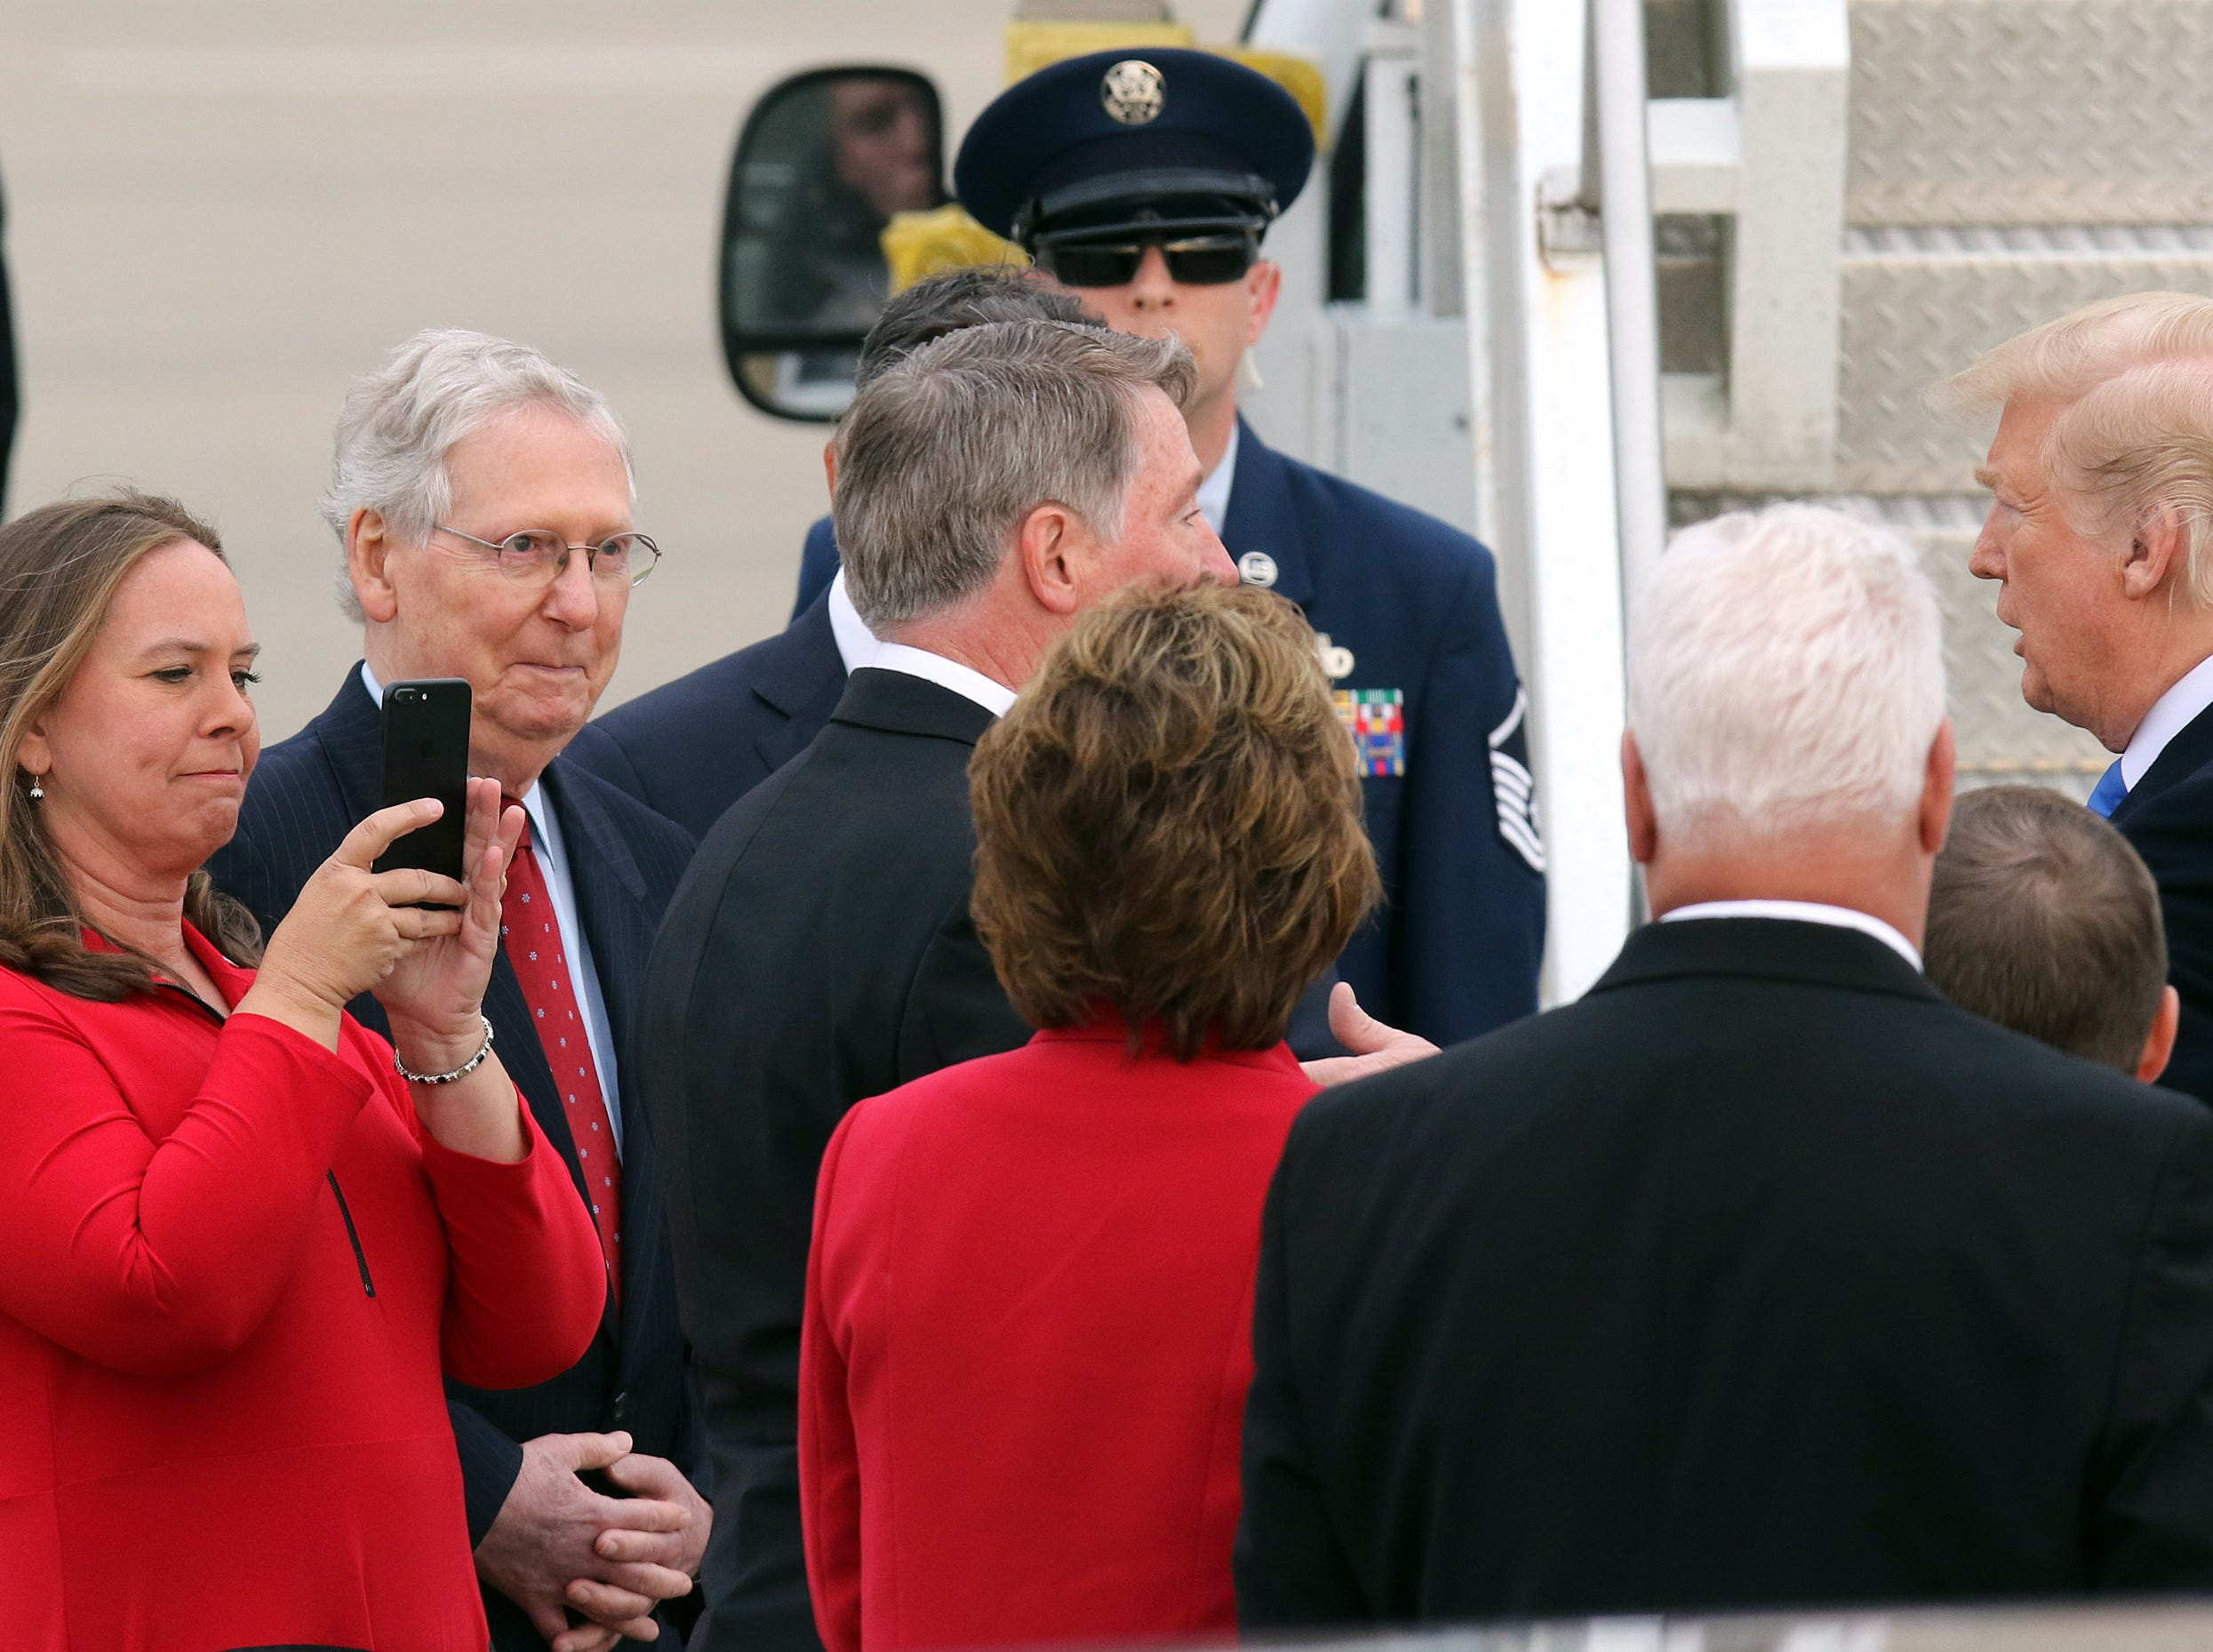 President Trump, right, greets dignitaries as State Rep. Suzanne Miles, left, takes a photo and Sen. Mitch McConnell looks on near Air Force One at Bluegrass Airport in Lexington, Oct. 13, 2018.